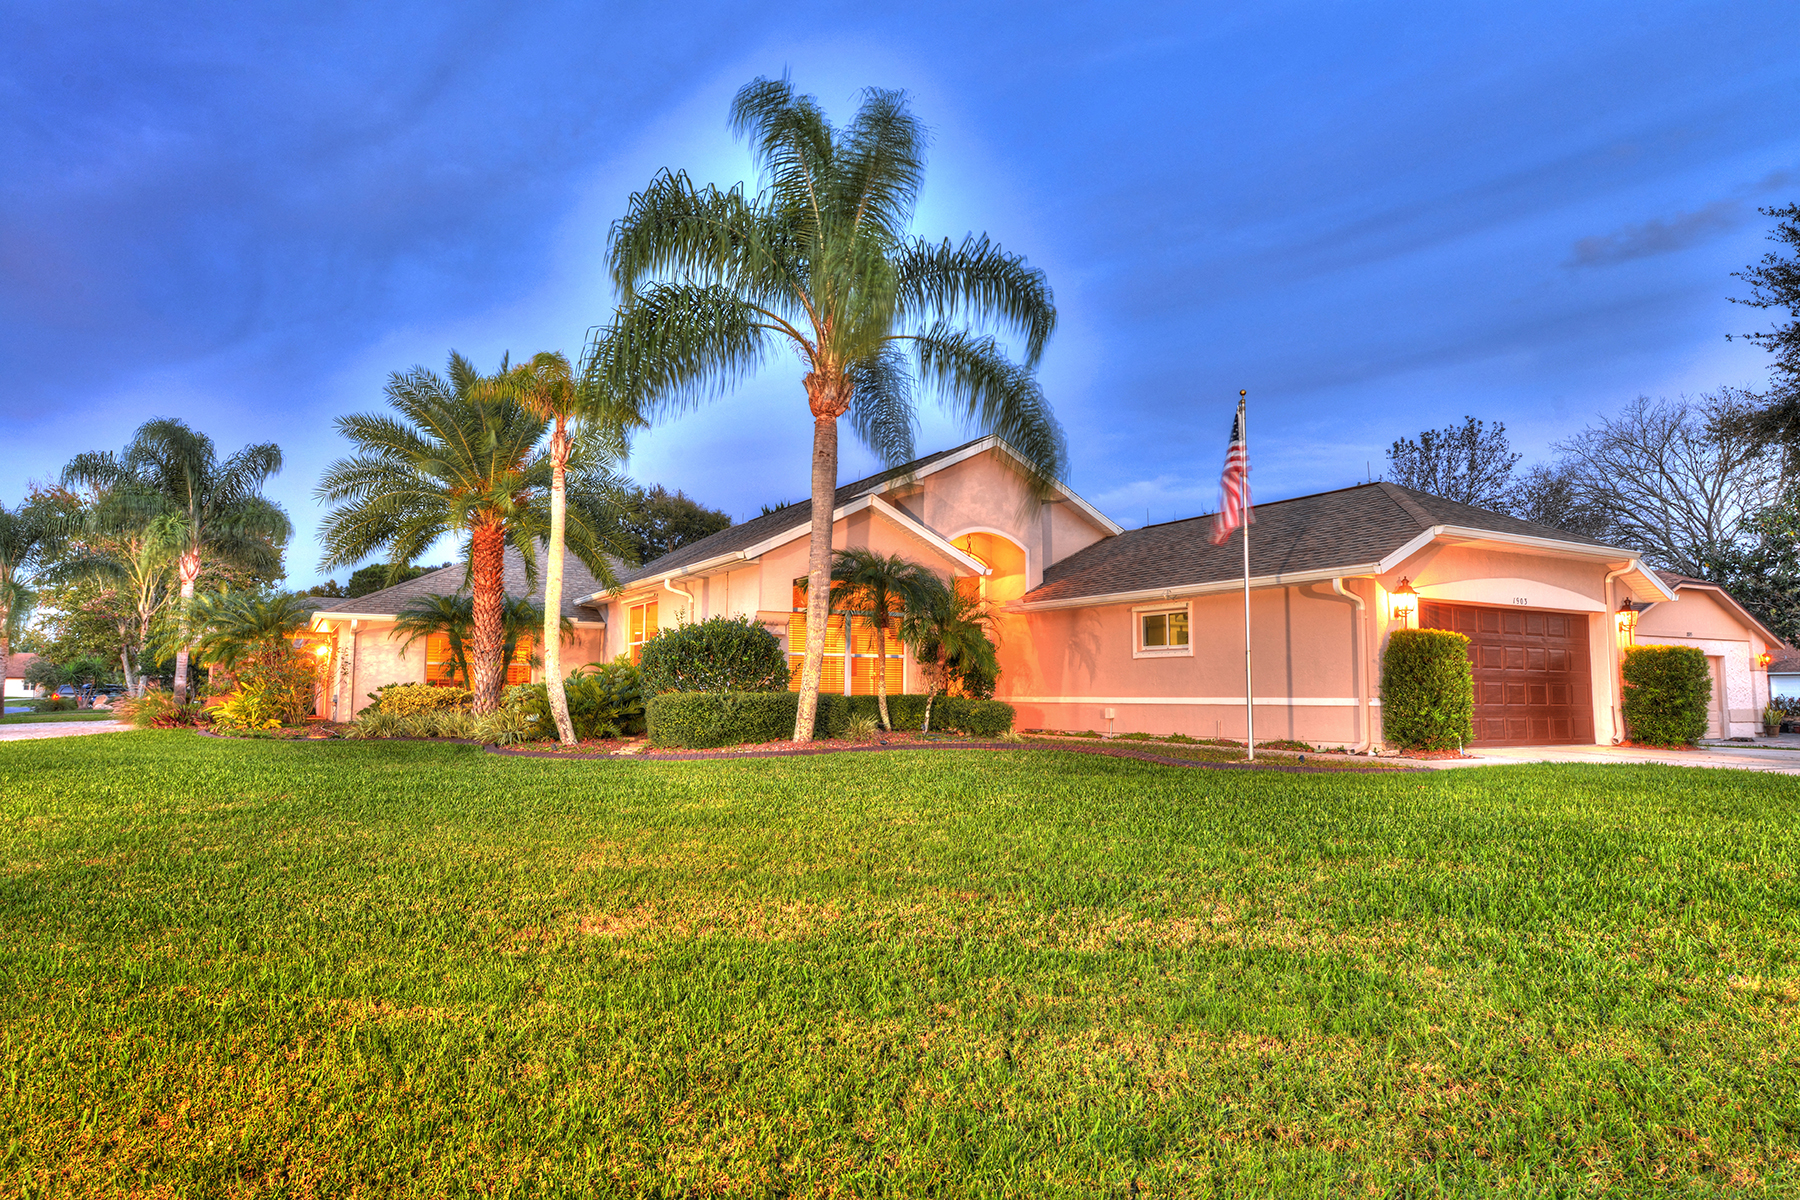 Single Family Home for Sale at SPRUCE CREEK AND THE BEACHES 1903 Seclusion Dr Port Orange, Florida, 32128 United States